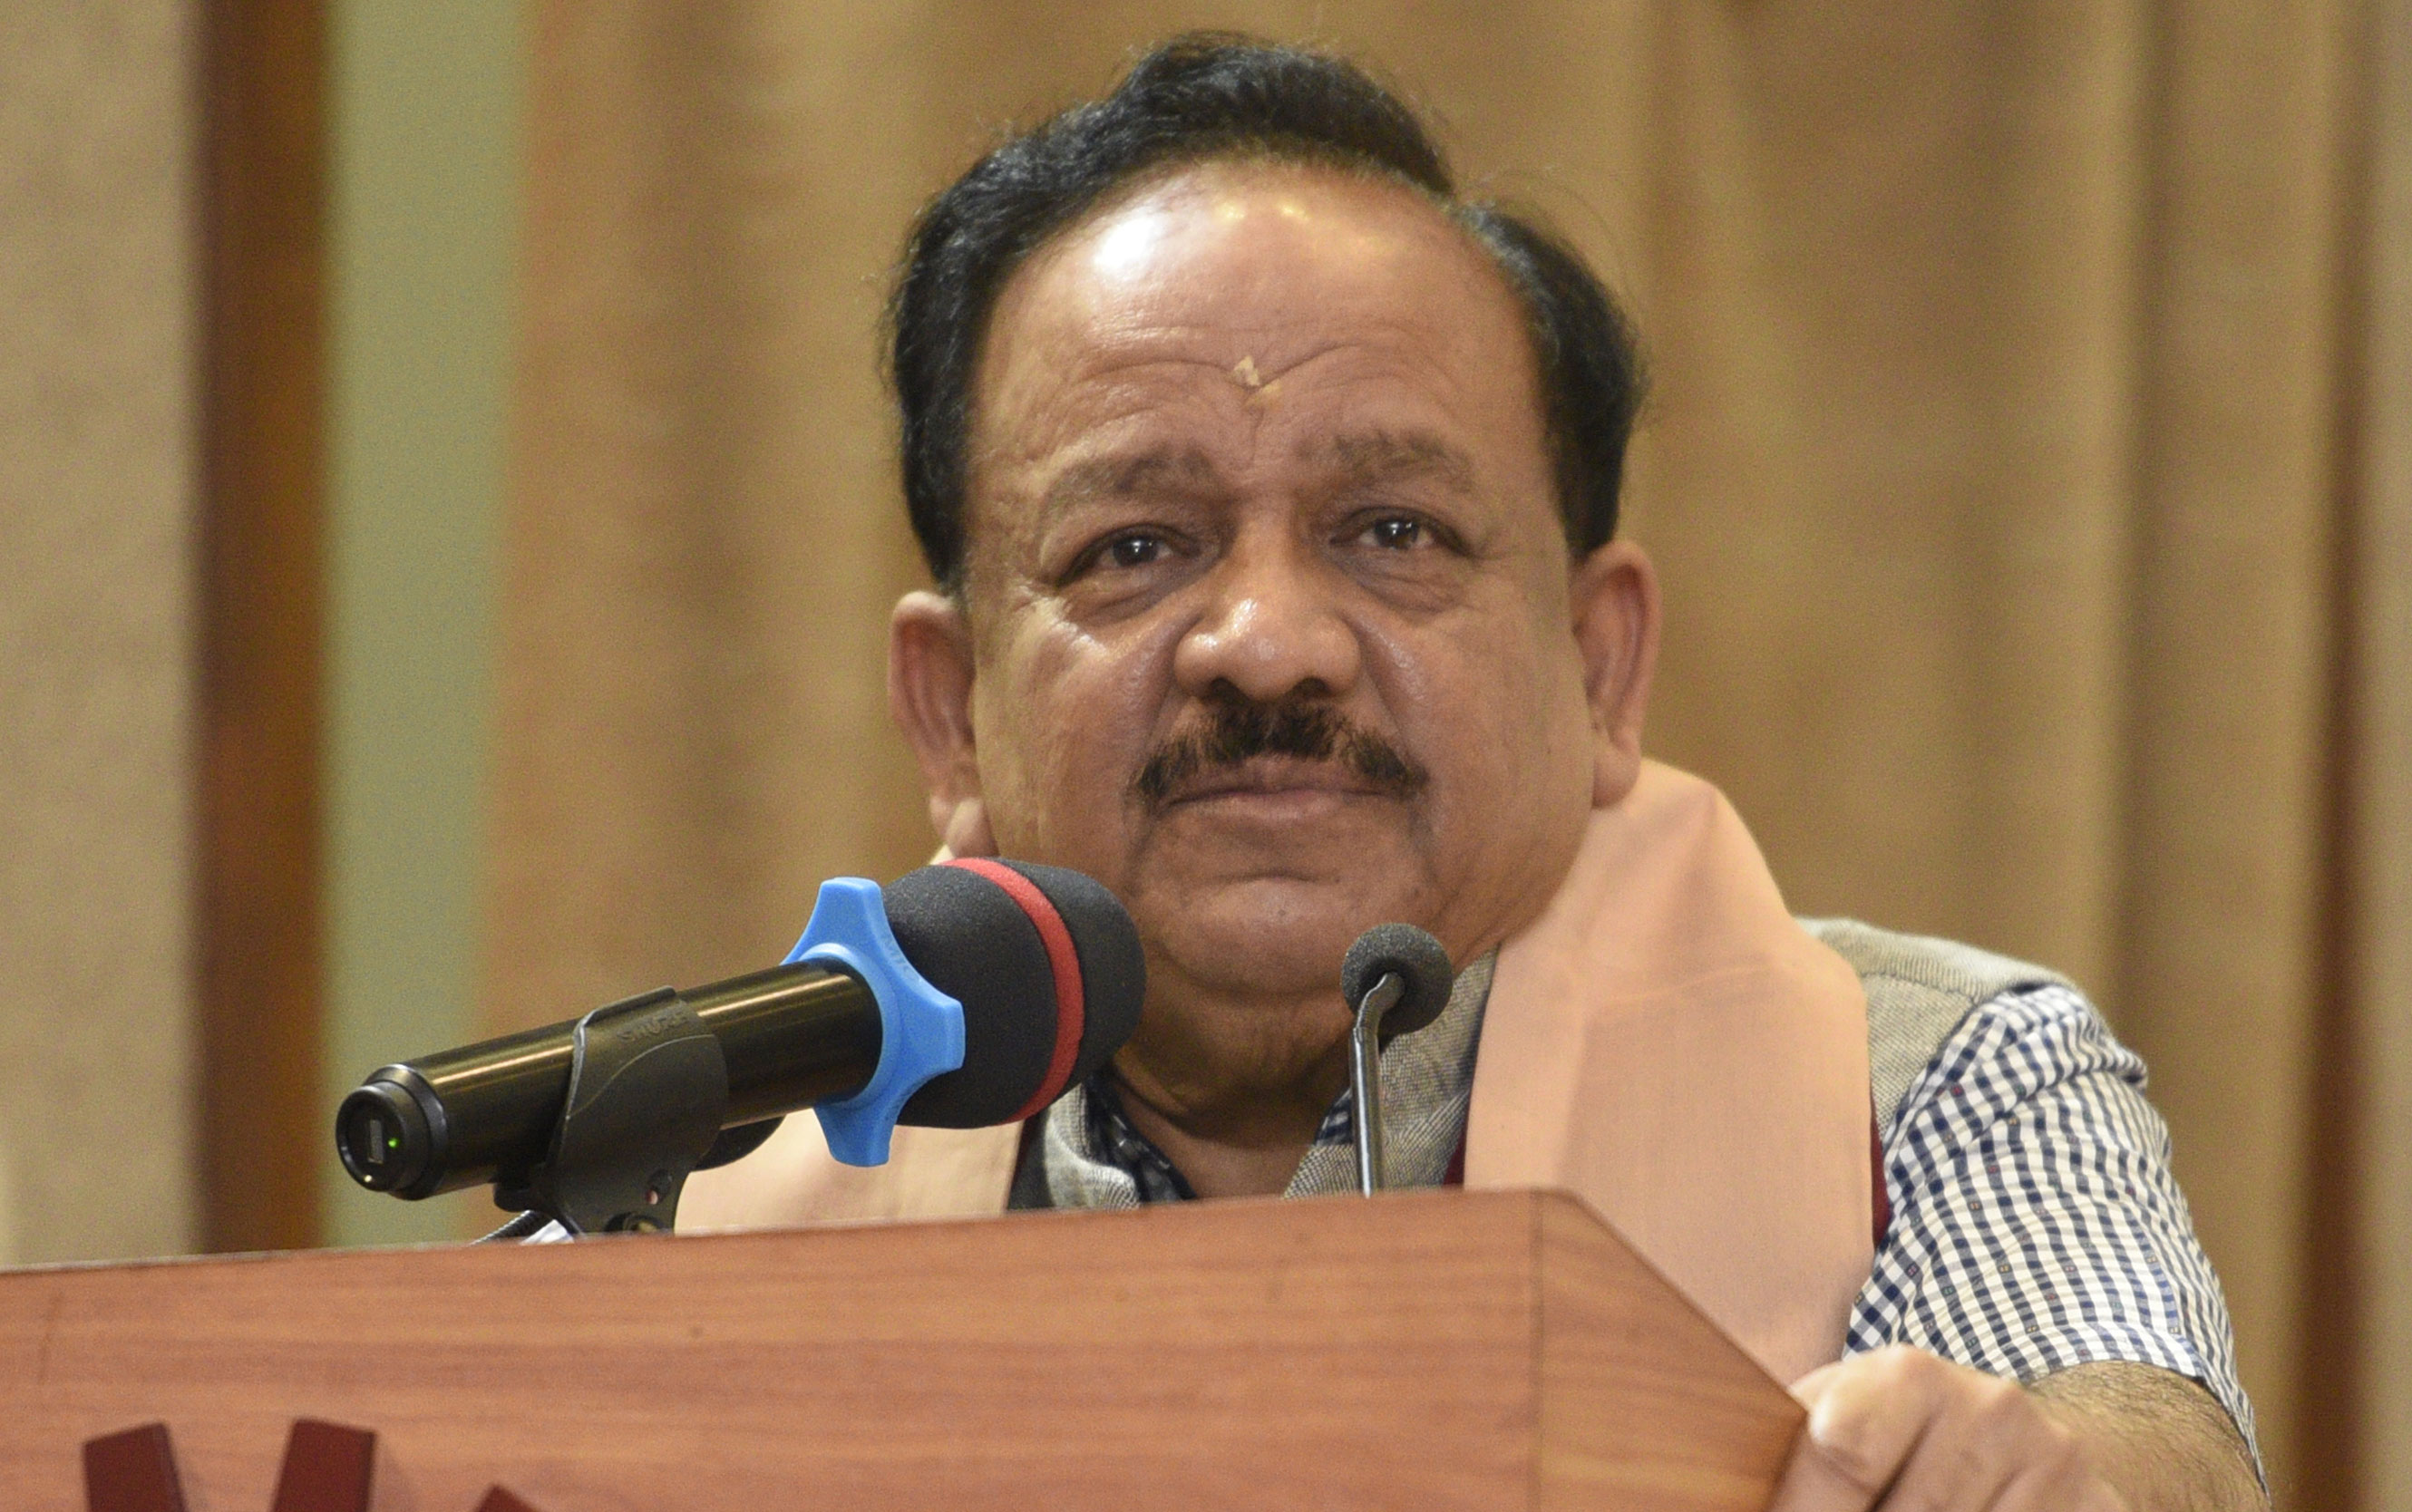 Union Health Minister Harsh Vardhan (in picture) is scheduled to visit Muzaffarpur on Sunday to take stock of the situation.